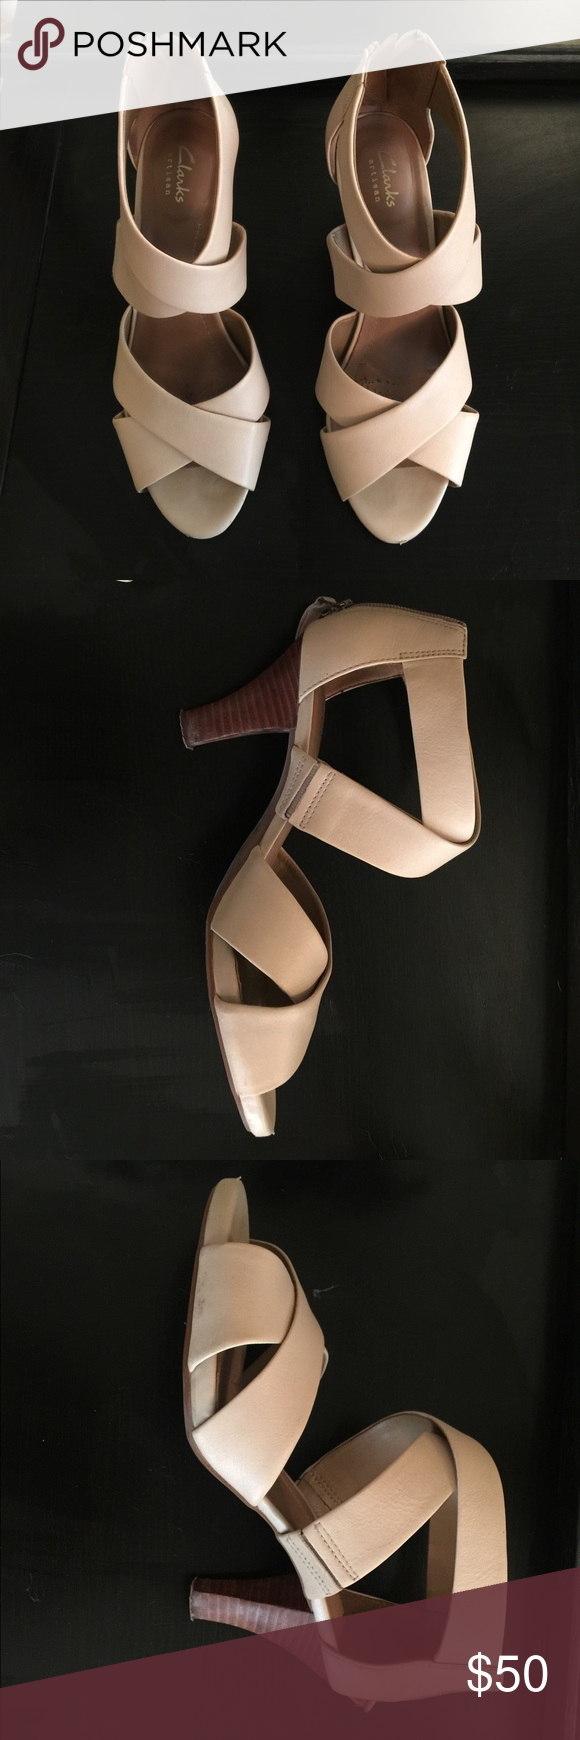 54897d846ef Clarks Women s Florine Sashae Dress Sandal Worn once for an outdoor  wedding. Minor scuffs. This shoe is crafted from genuine full-grain leather  which is ...